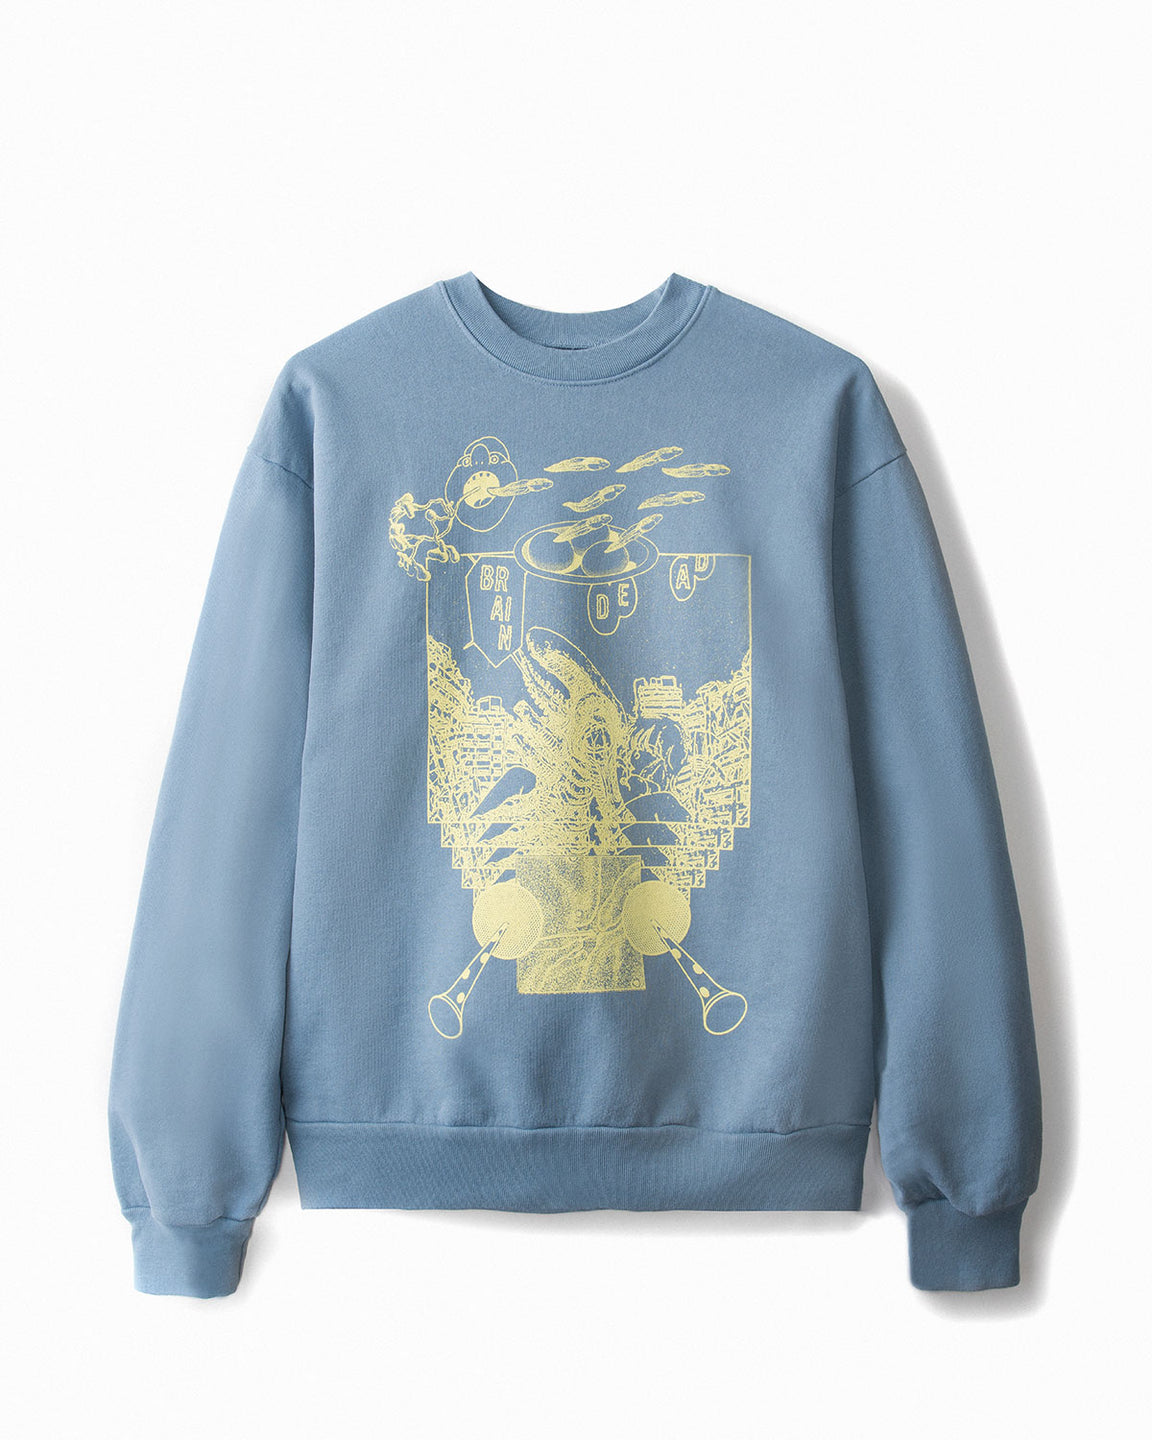 Breakfast with Terence McKenna Sweatshirt - Washed Blue